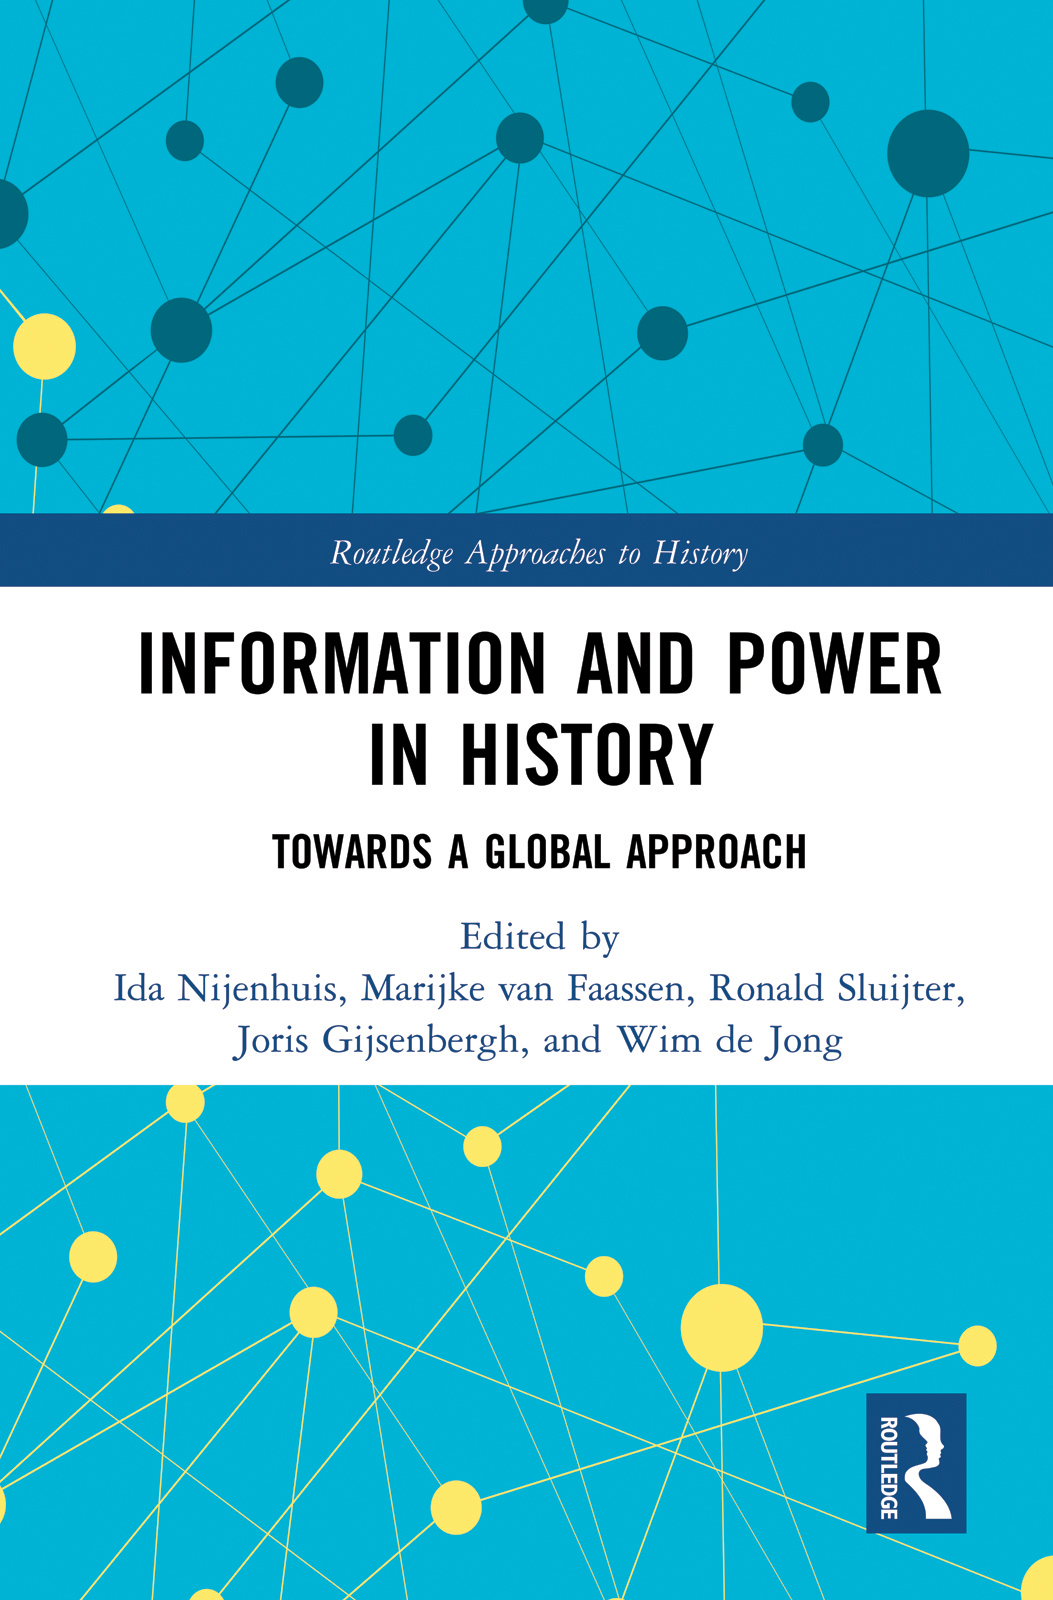 Information and Power in History